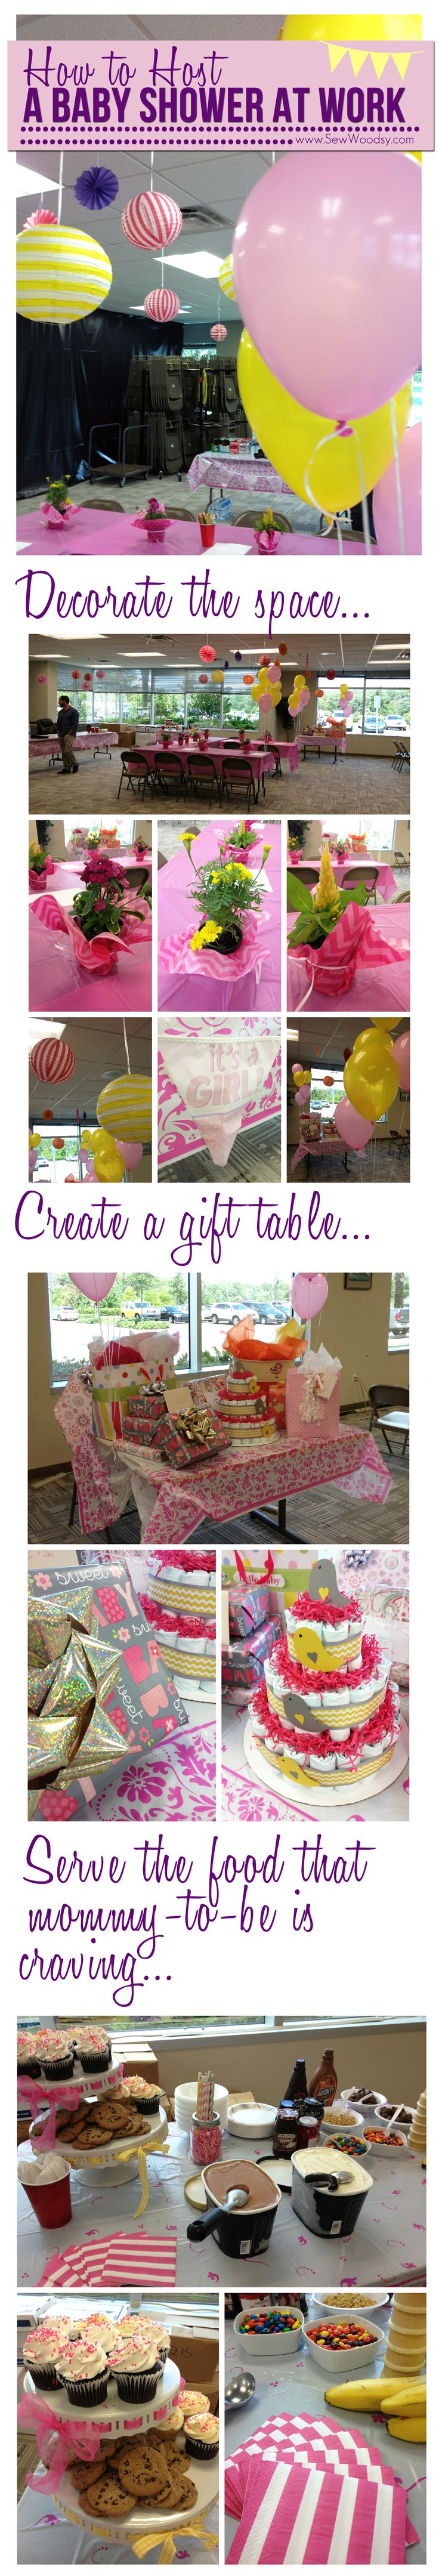 Office Baby Shower Ideas